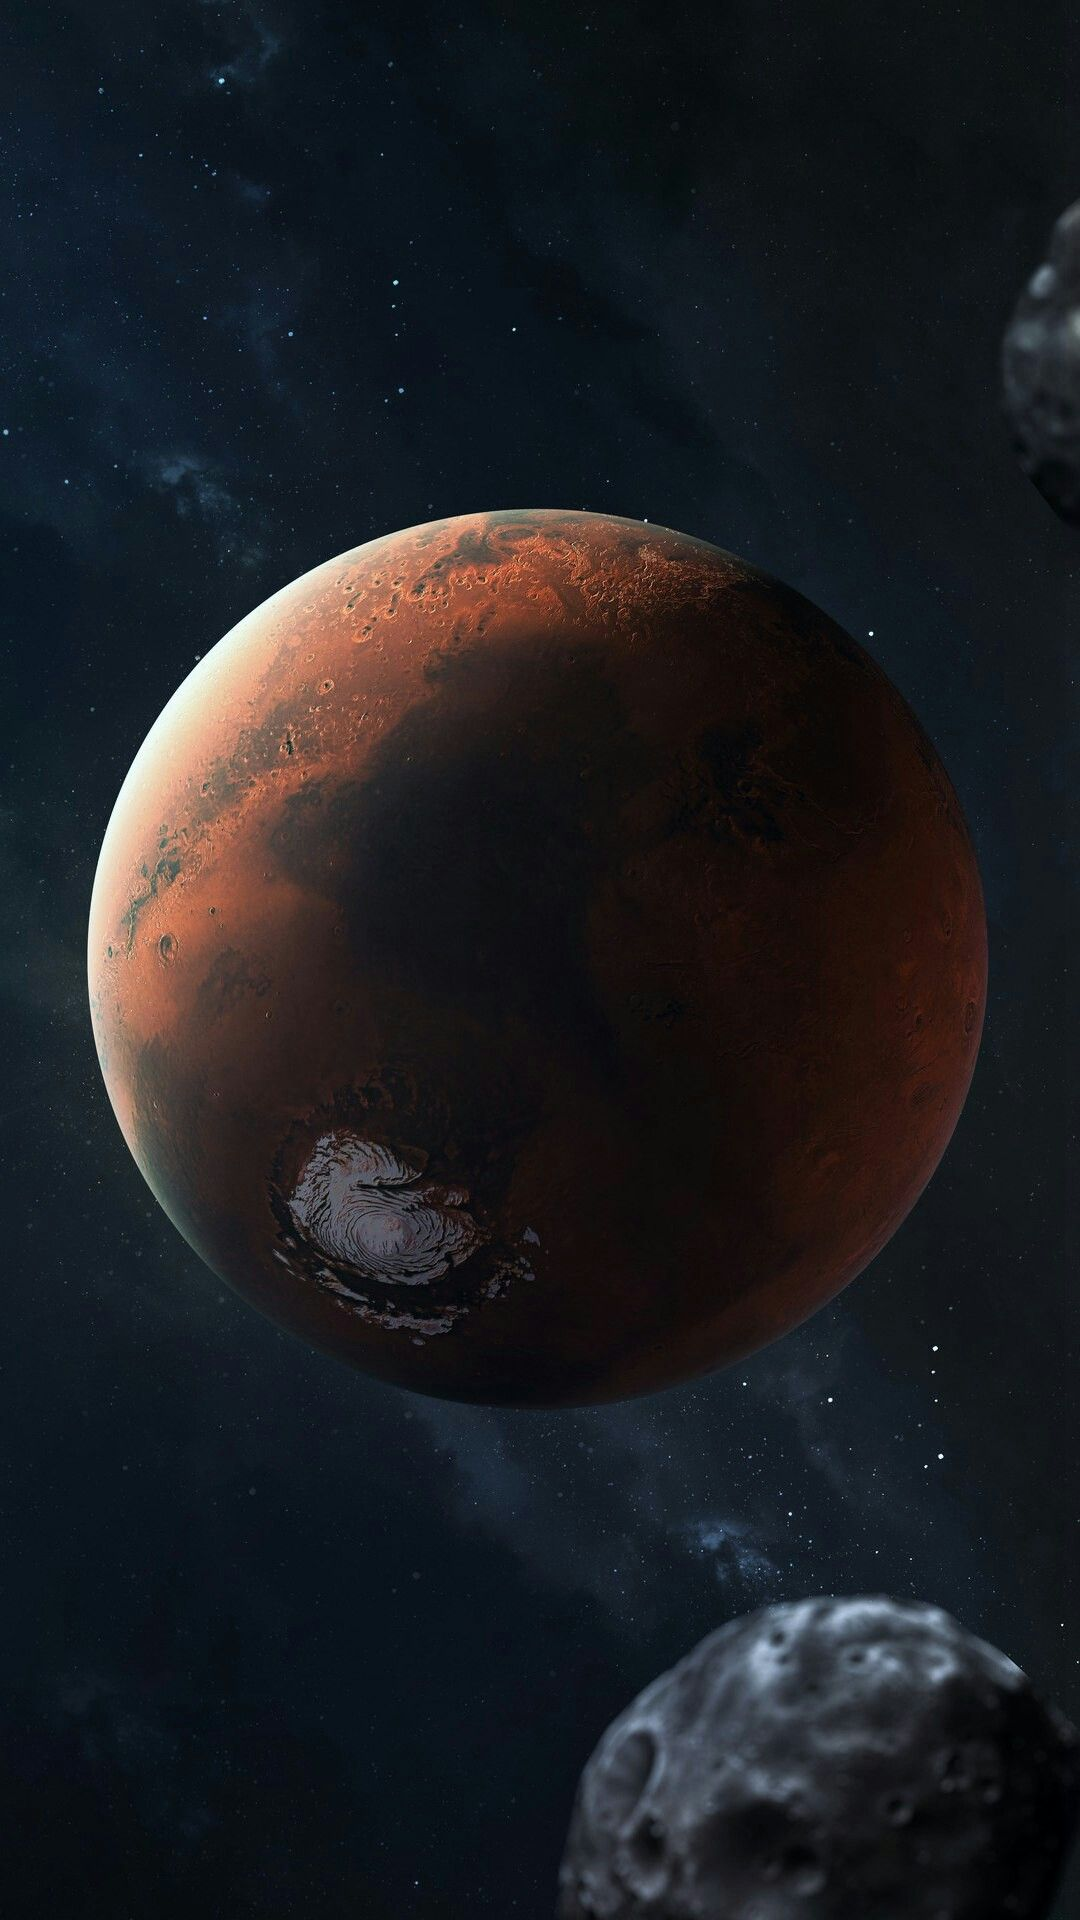 Our beautiful planet Mars | Planets wallpaper, Planets ...